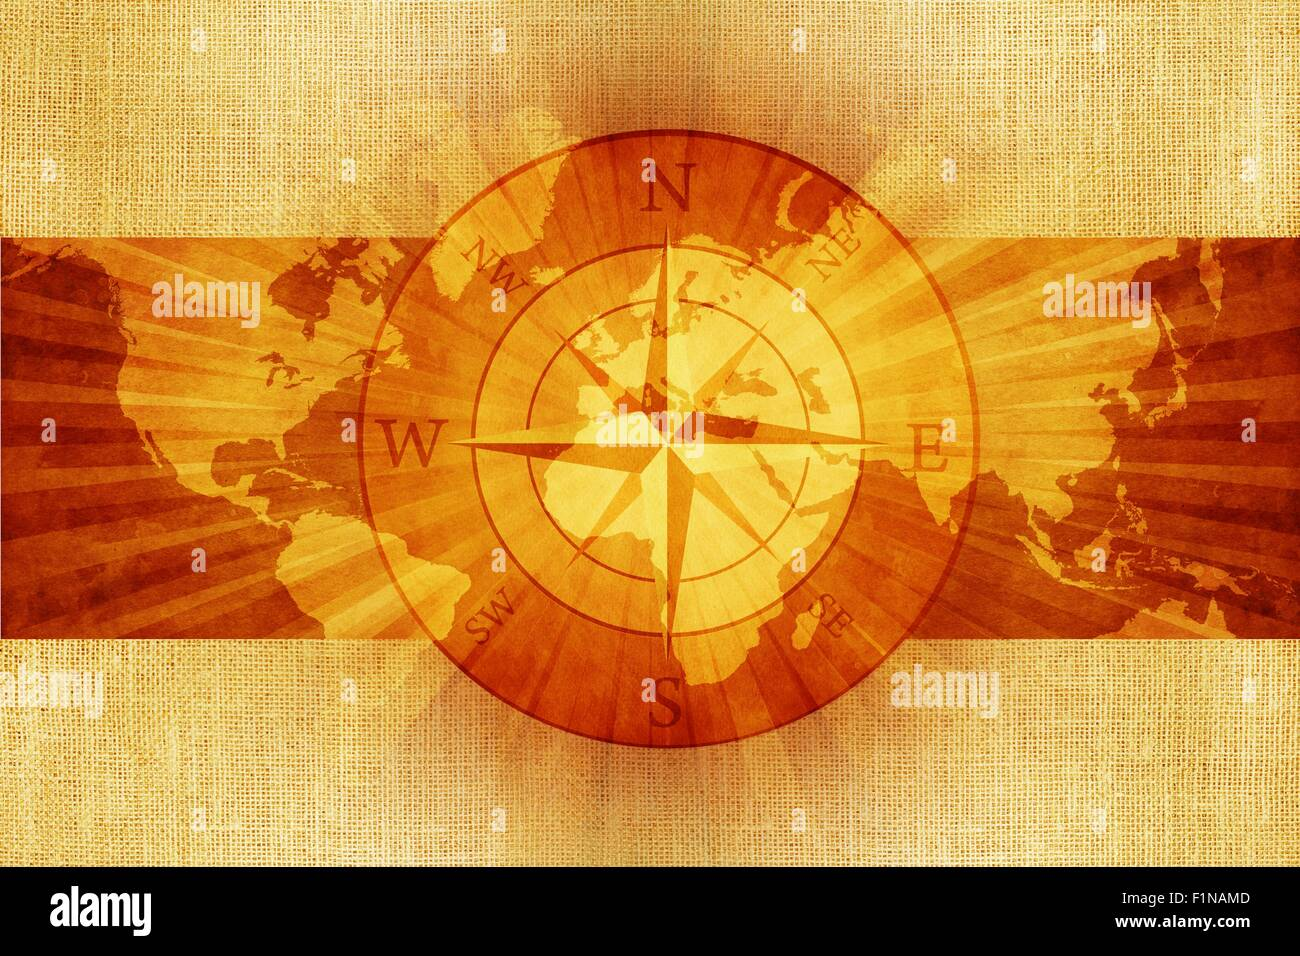 Old vintage world map with compass rose on canvas abstract stock old vintage world map with compass rose on canvas abstract illustration gumiabroncs Image collections